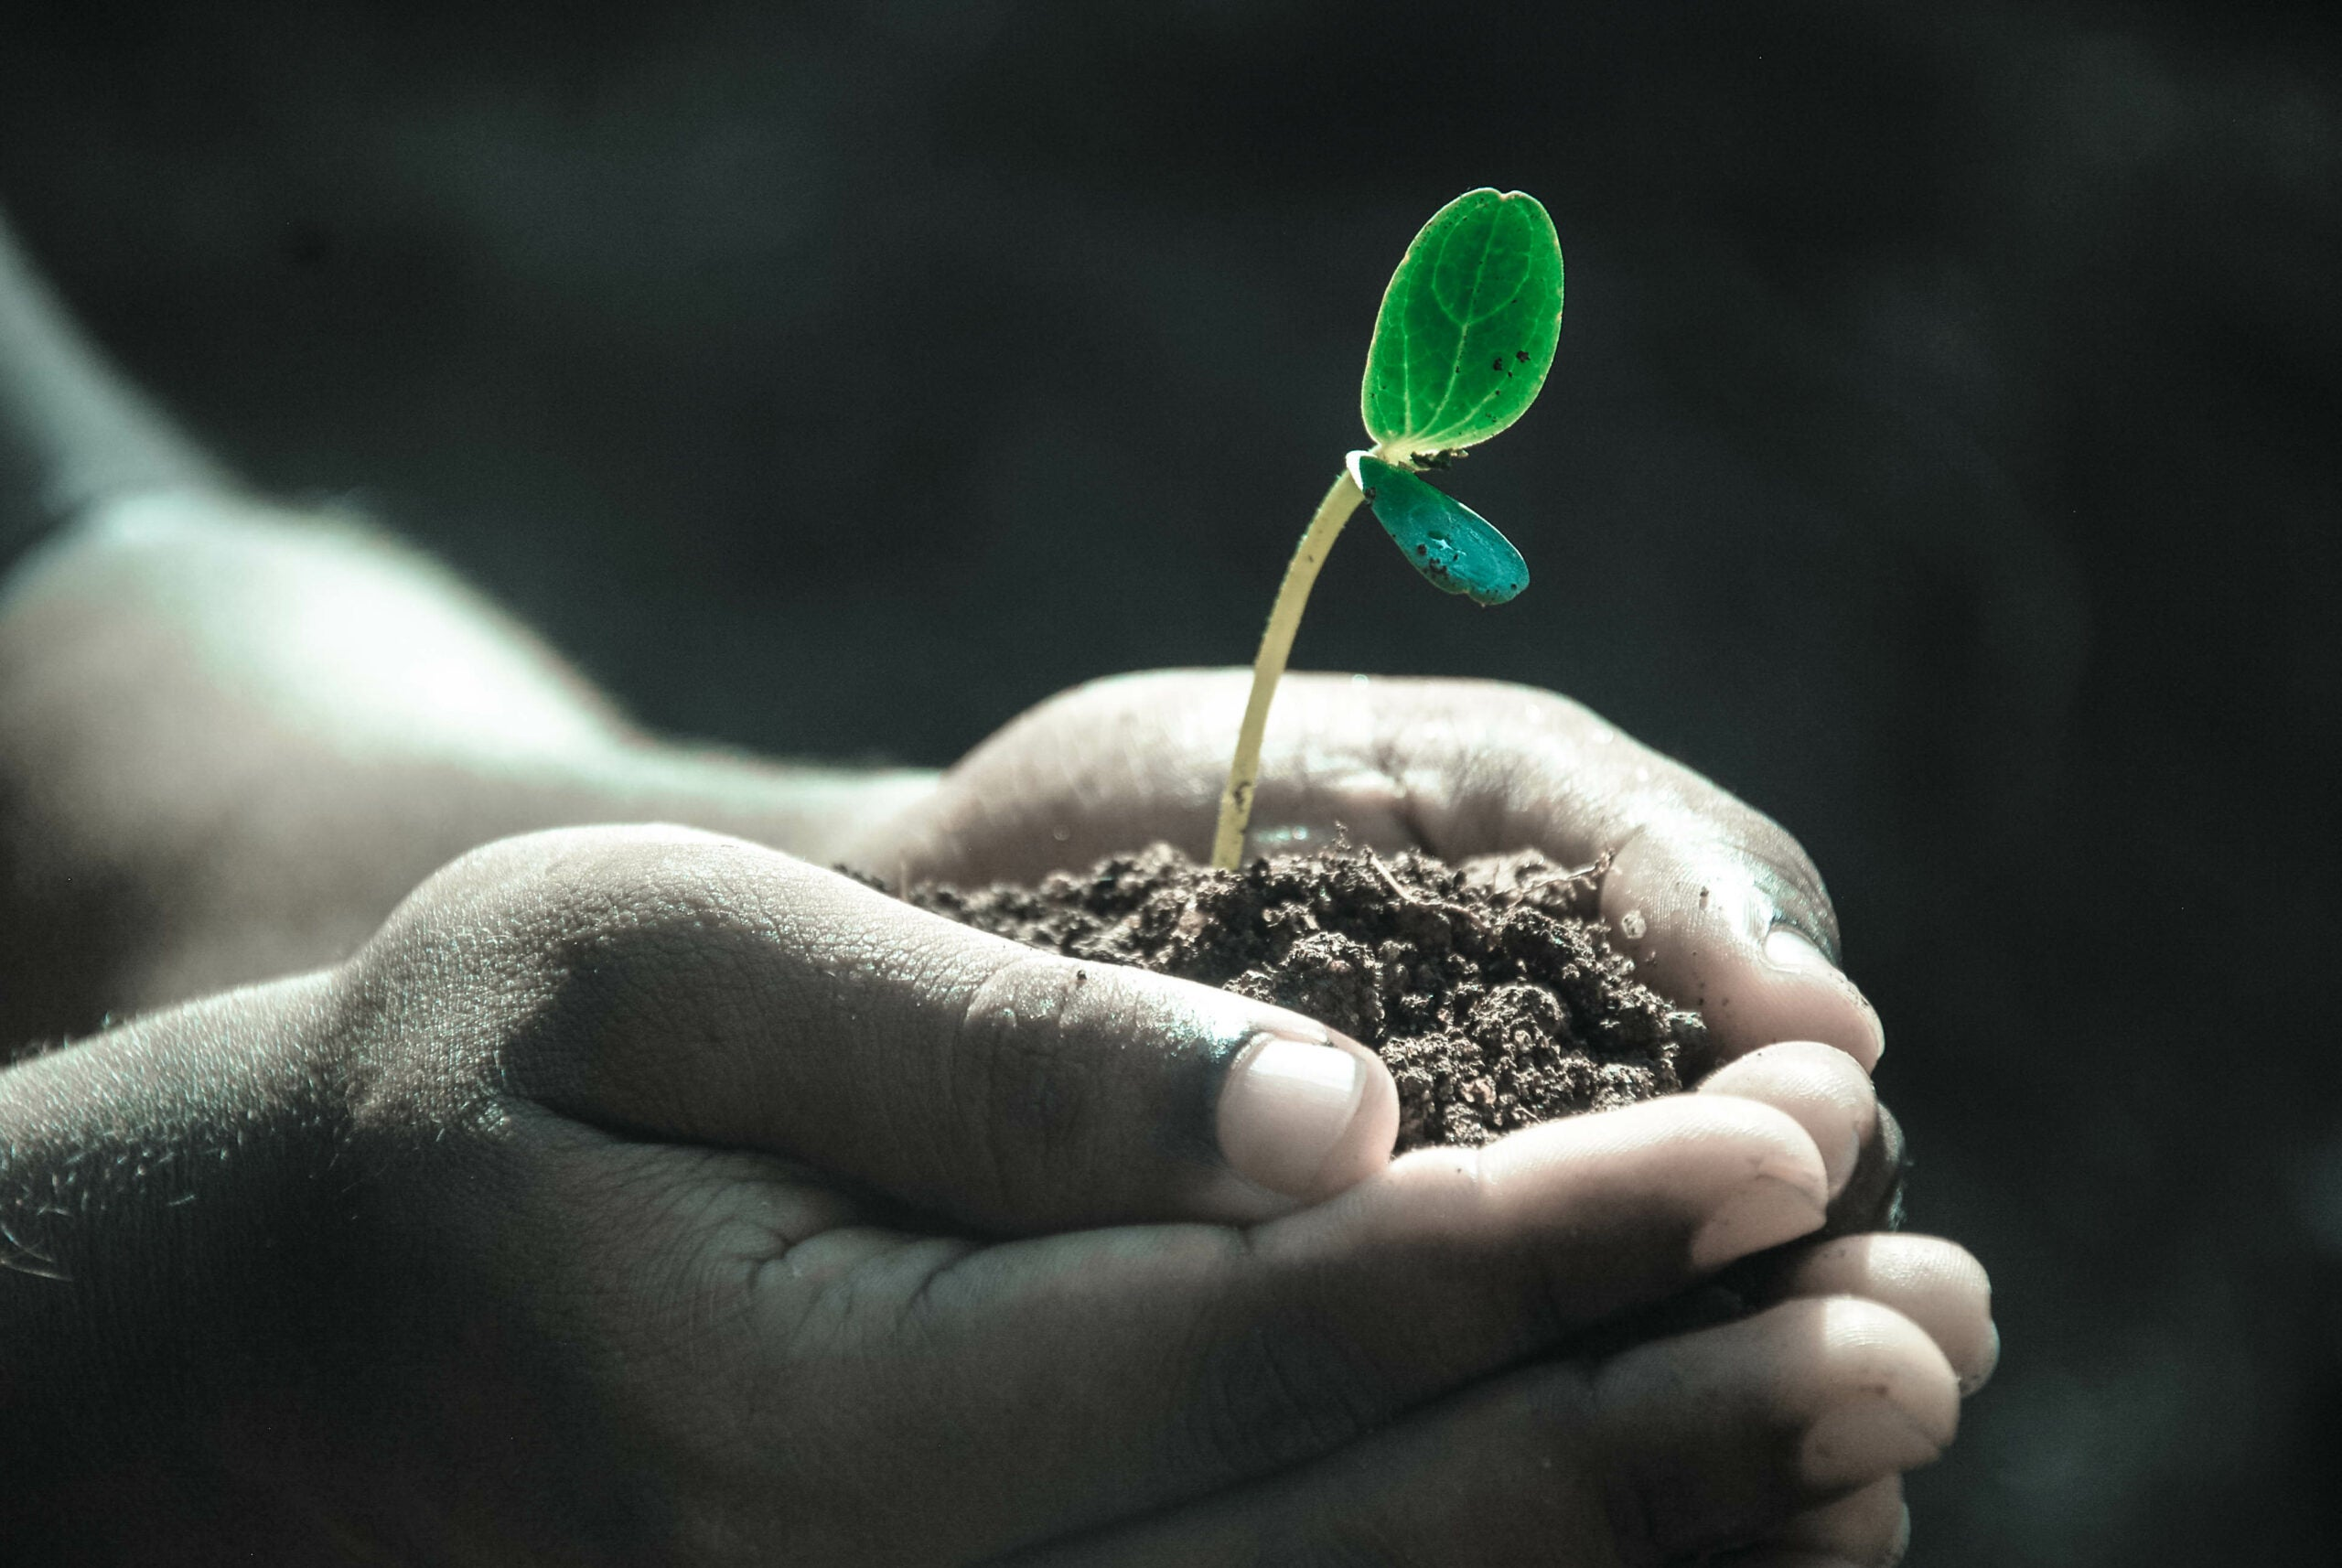 We need to protect the world's soil before it's too late